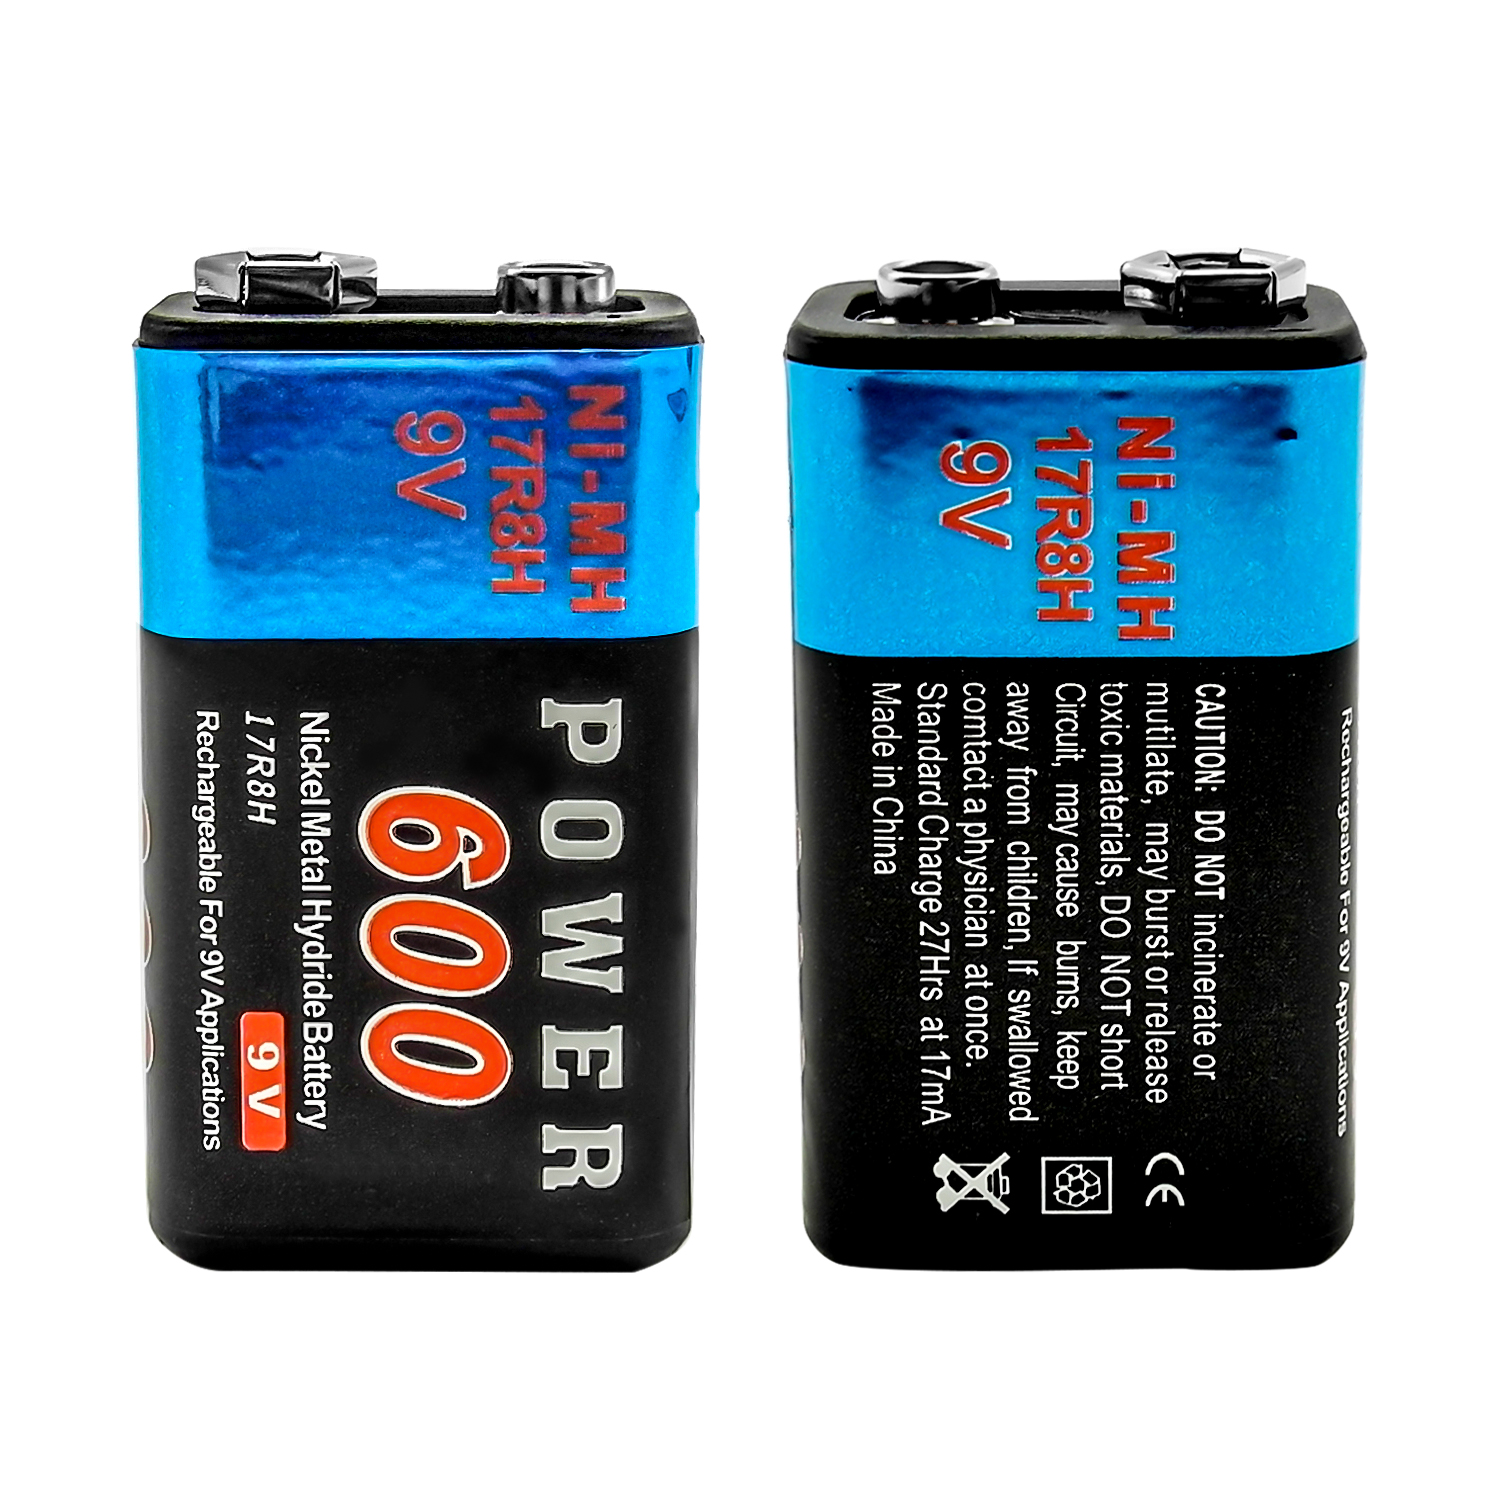 2 st ck 9v 9 volt 600mah nimh wiederaufladbare batterie f r radio gitarre rc ebay. Black Bedroom Furniture Sets. Home Design Ideas